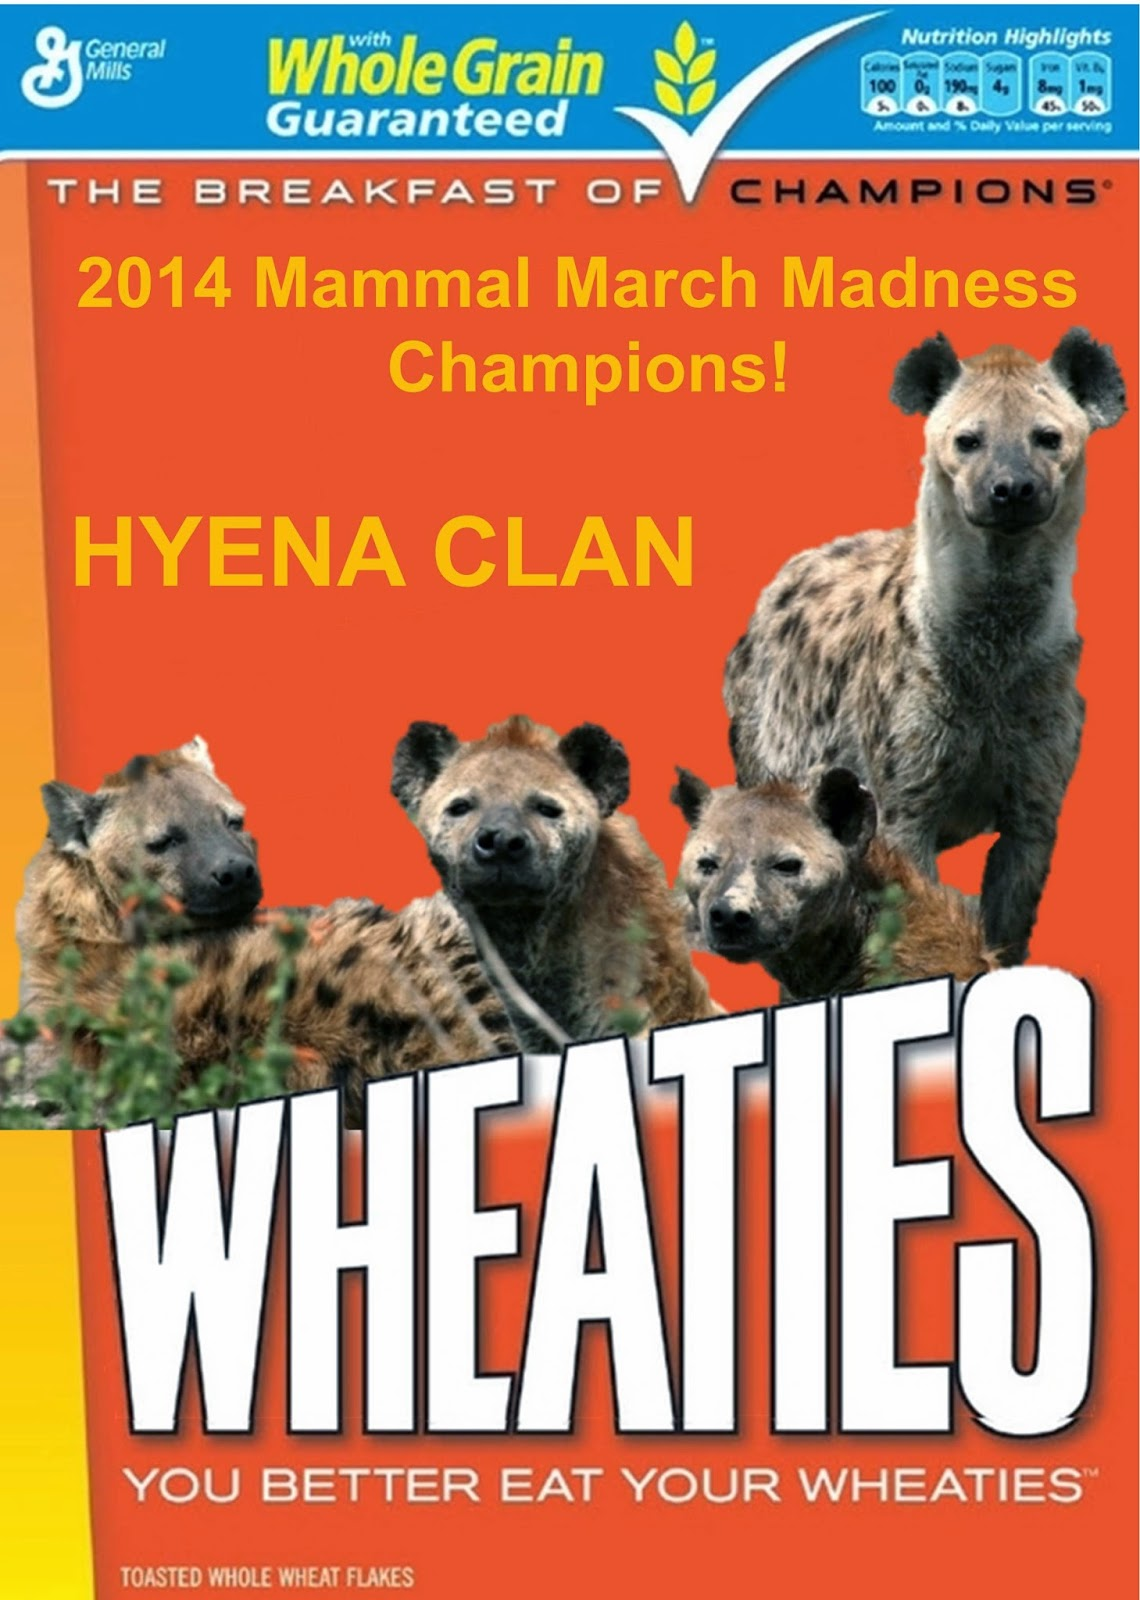 Wheaties box featureing the 2014 champions, hyena clan